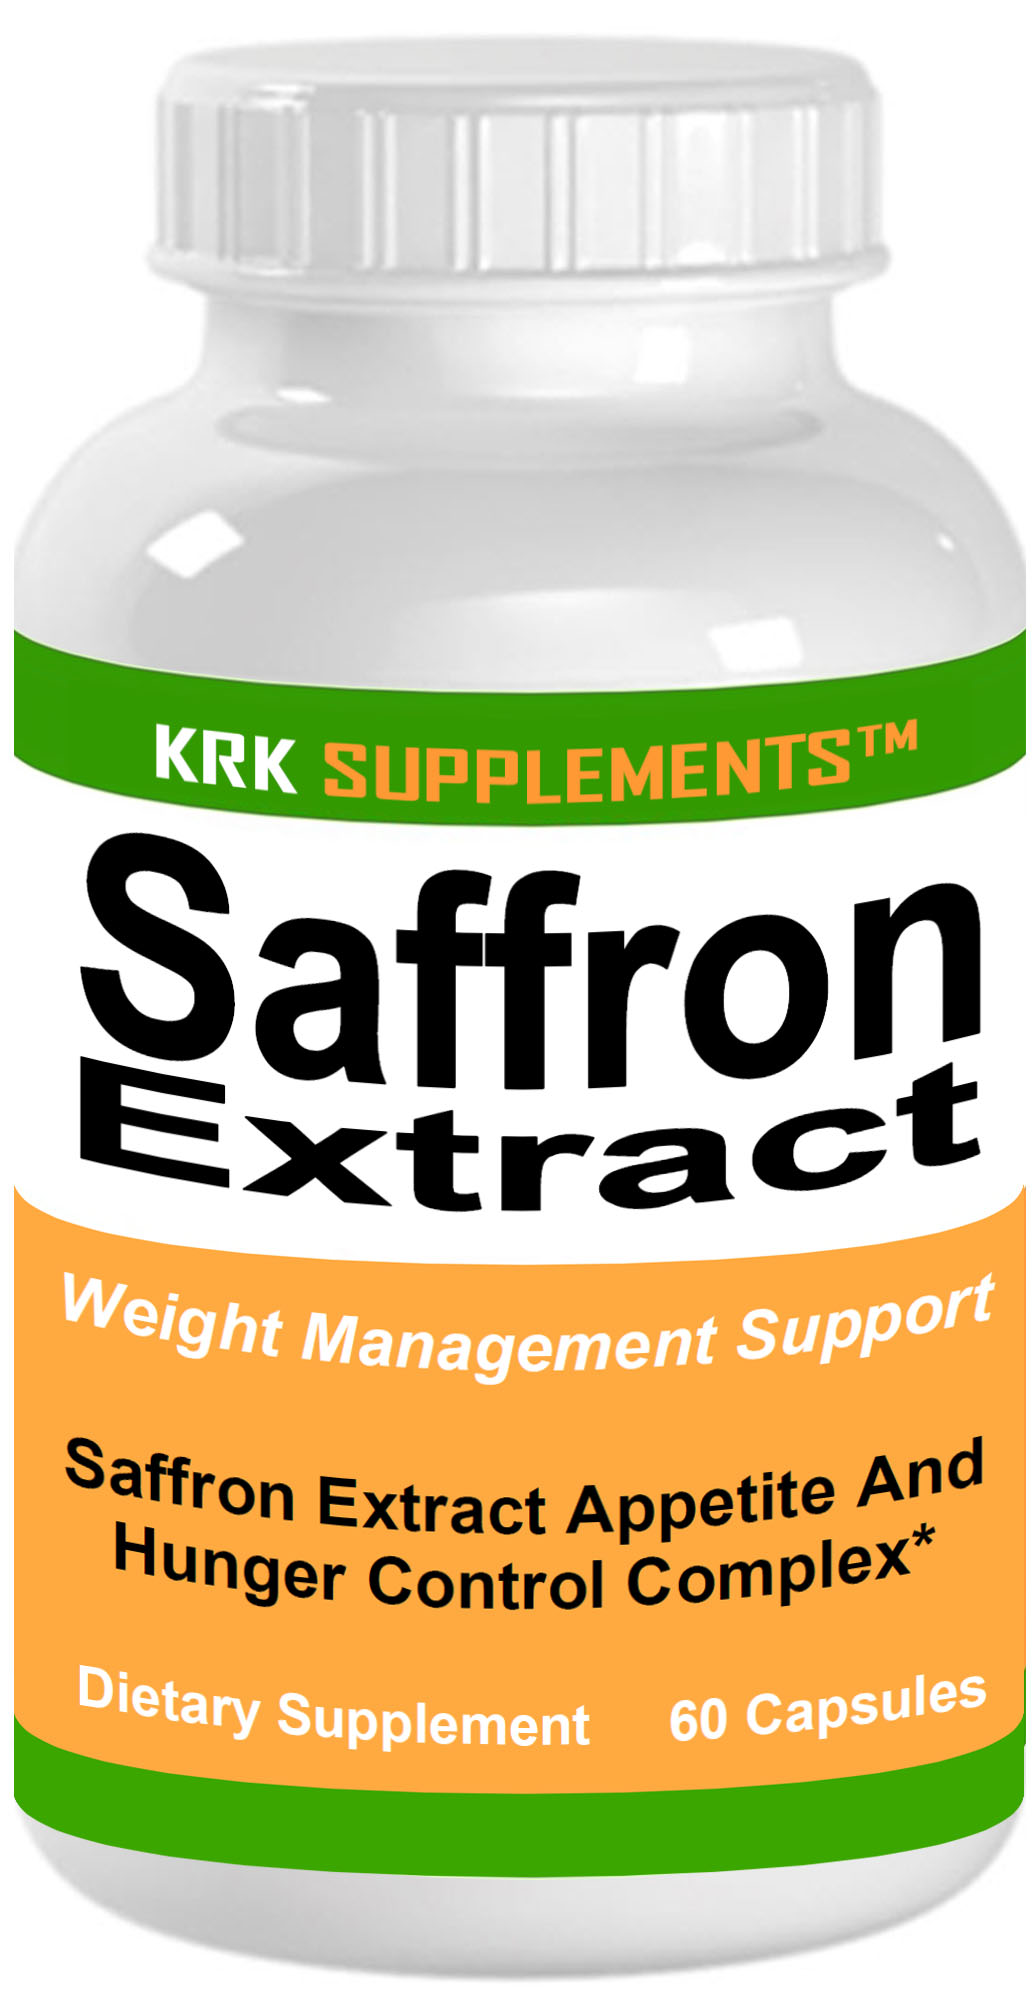 #1 weight loss pills for men image 1